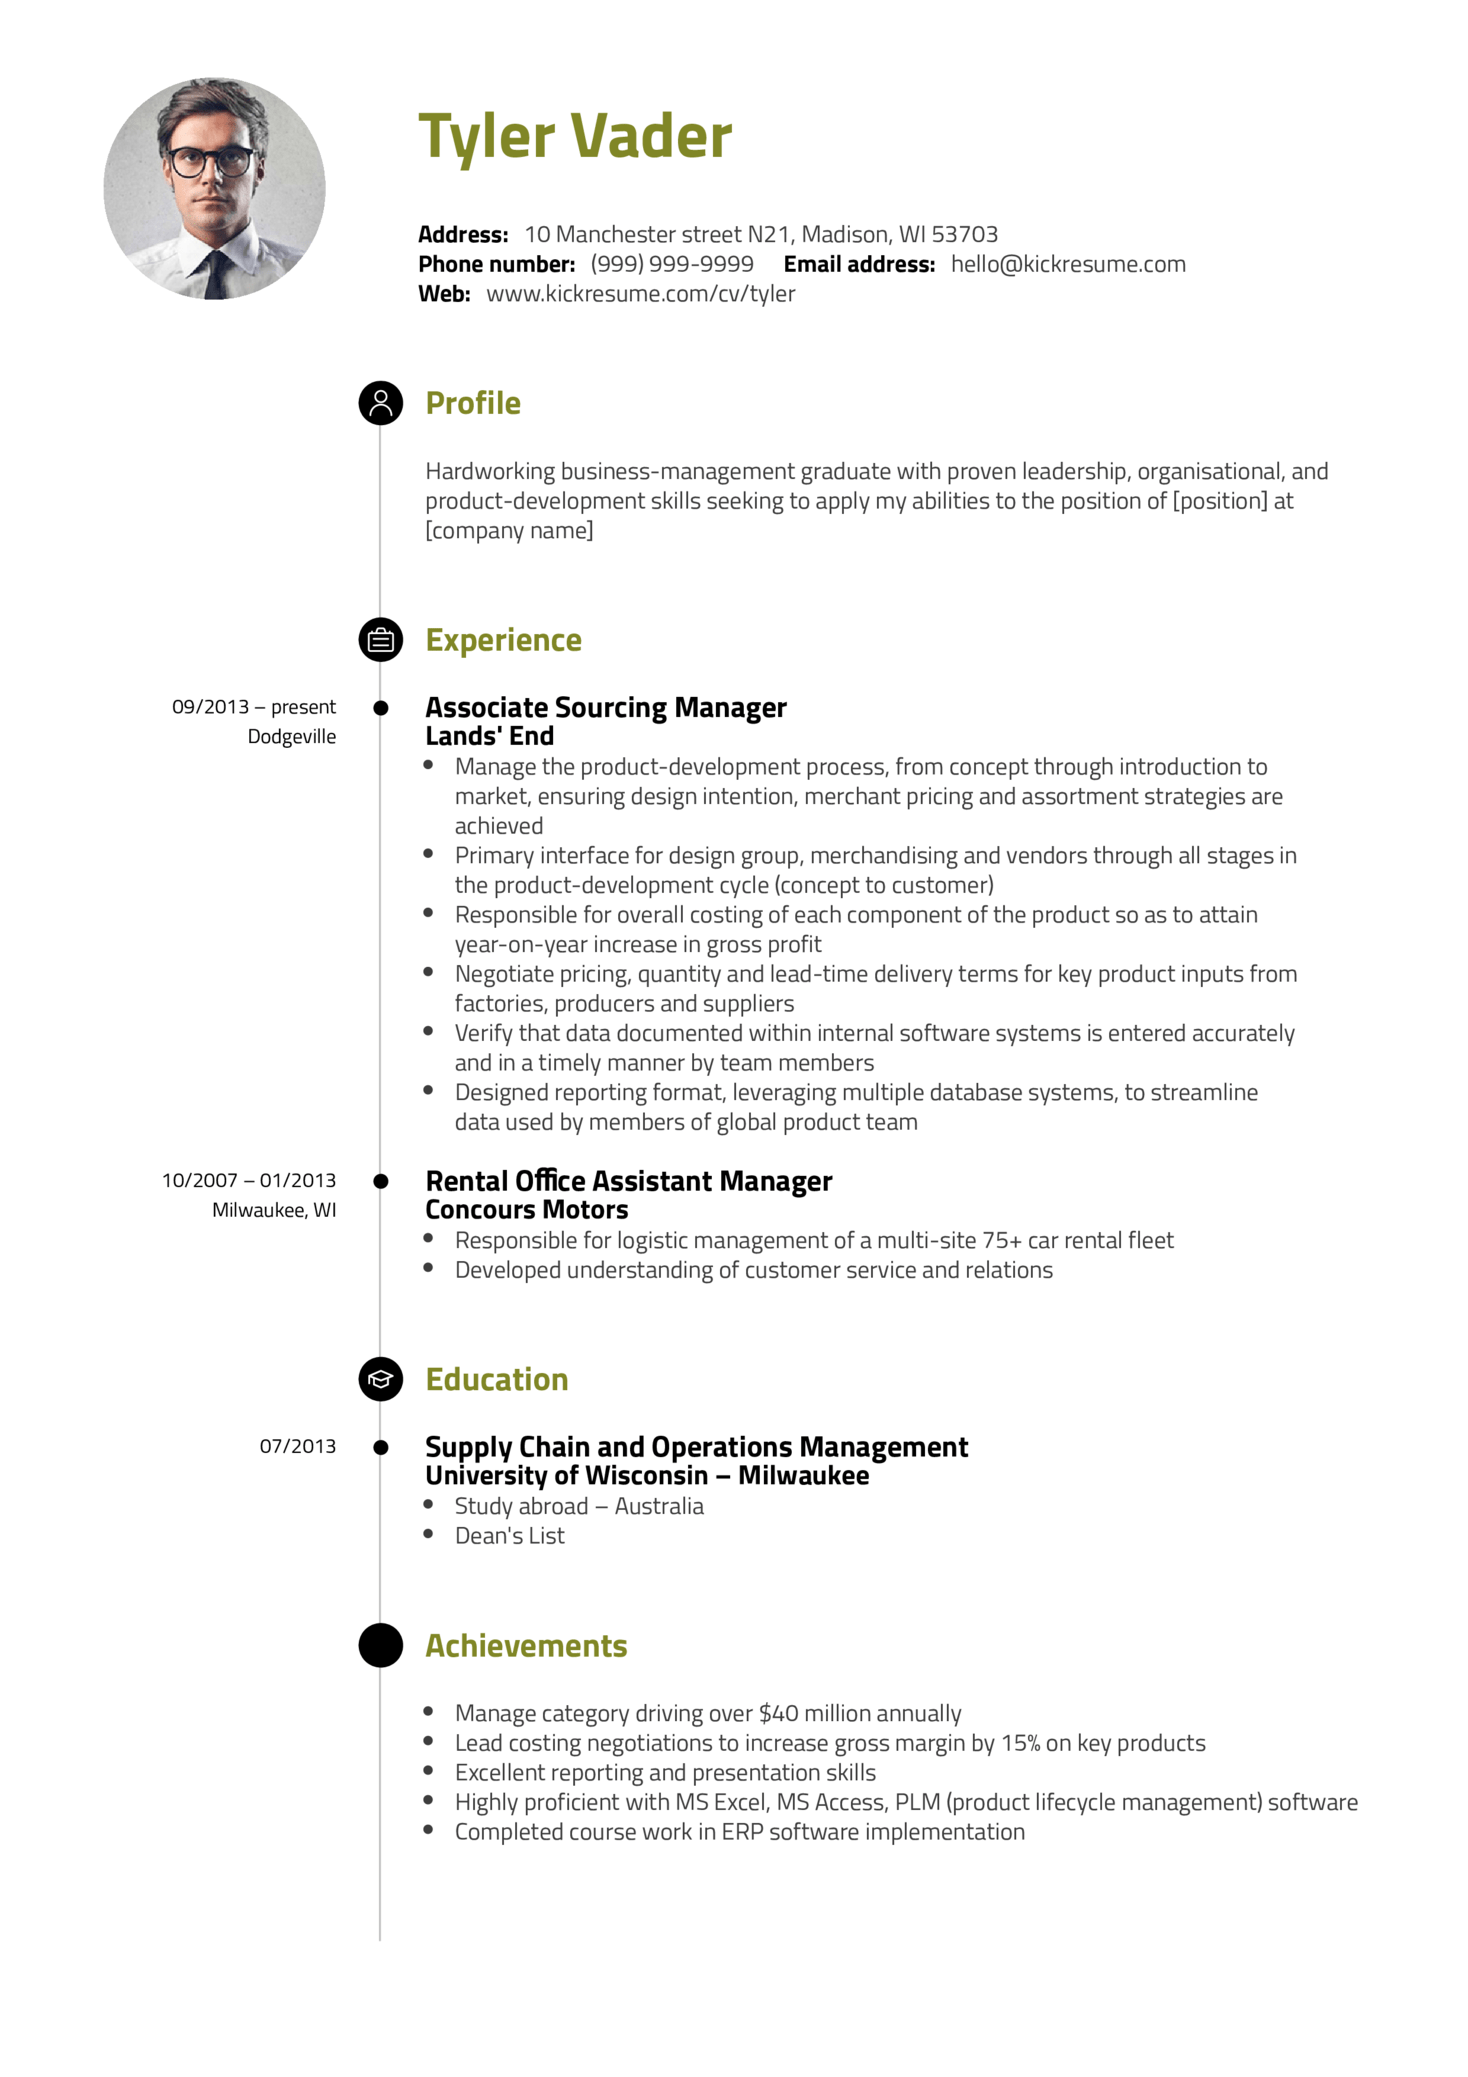 Business Management Graduate Cv Example 106312 69 Edit This Resume Sample